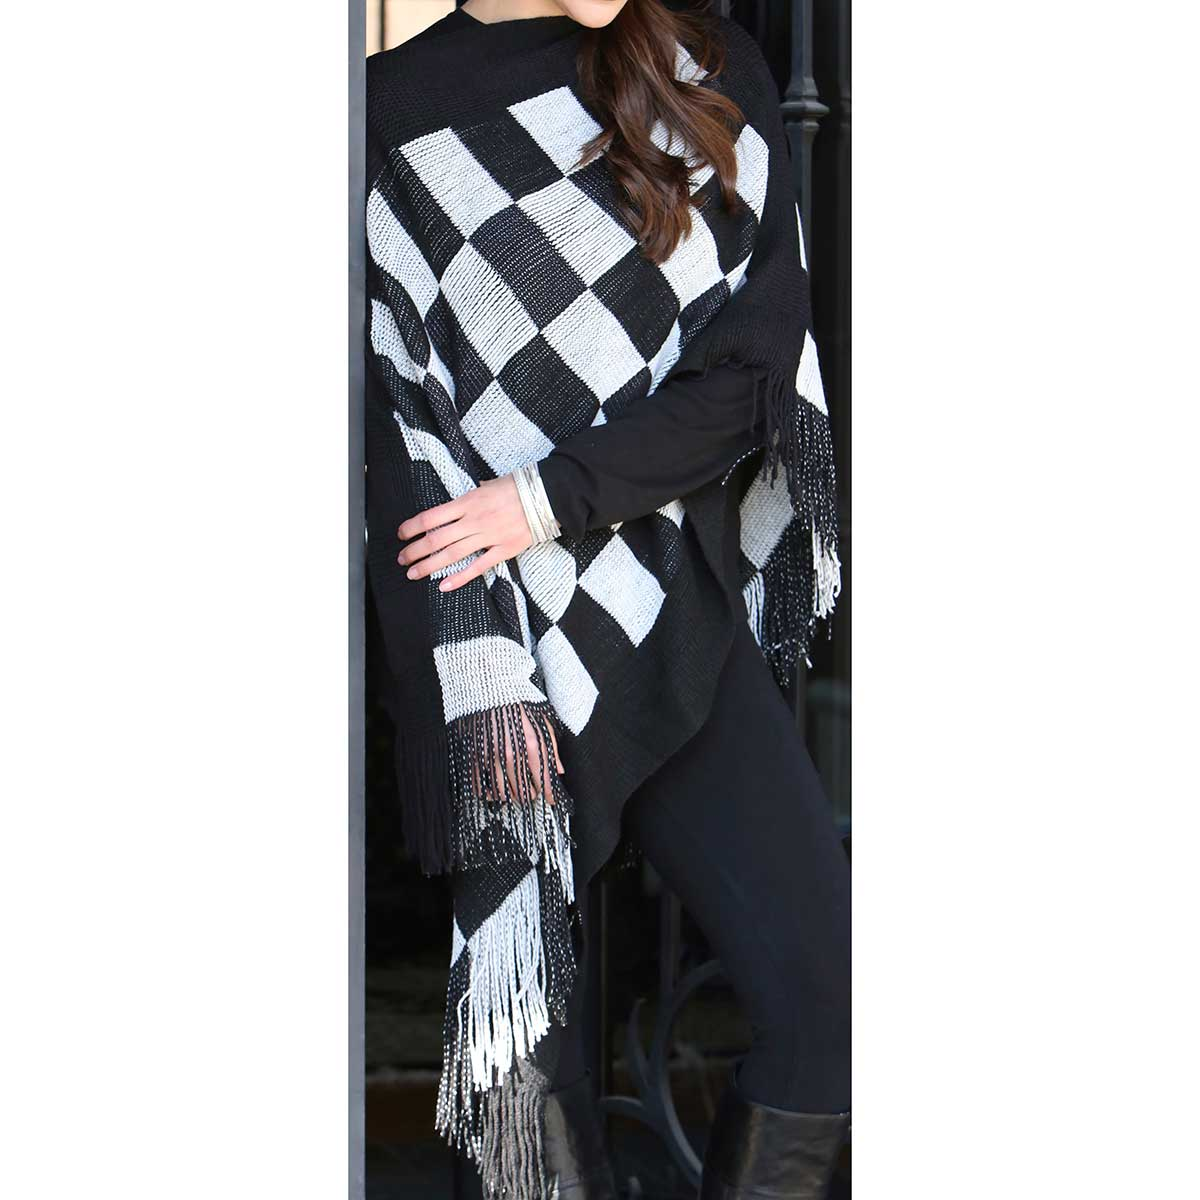 Black Checkered Knit Poncho with Fringe *30sp